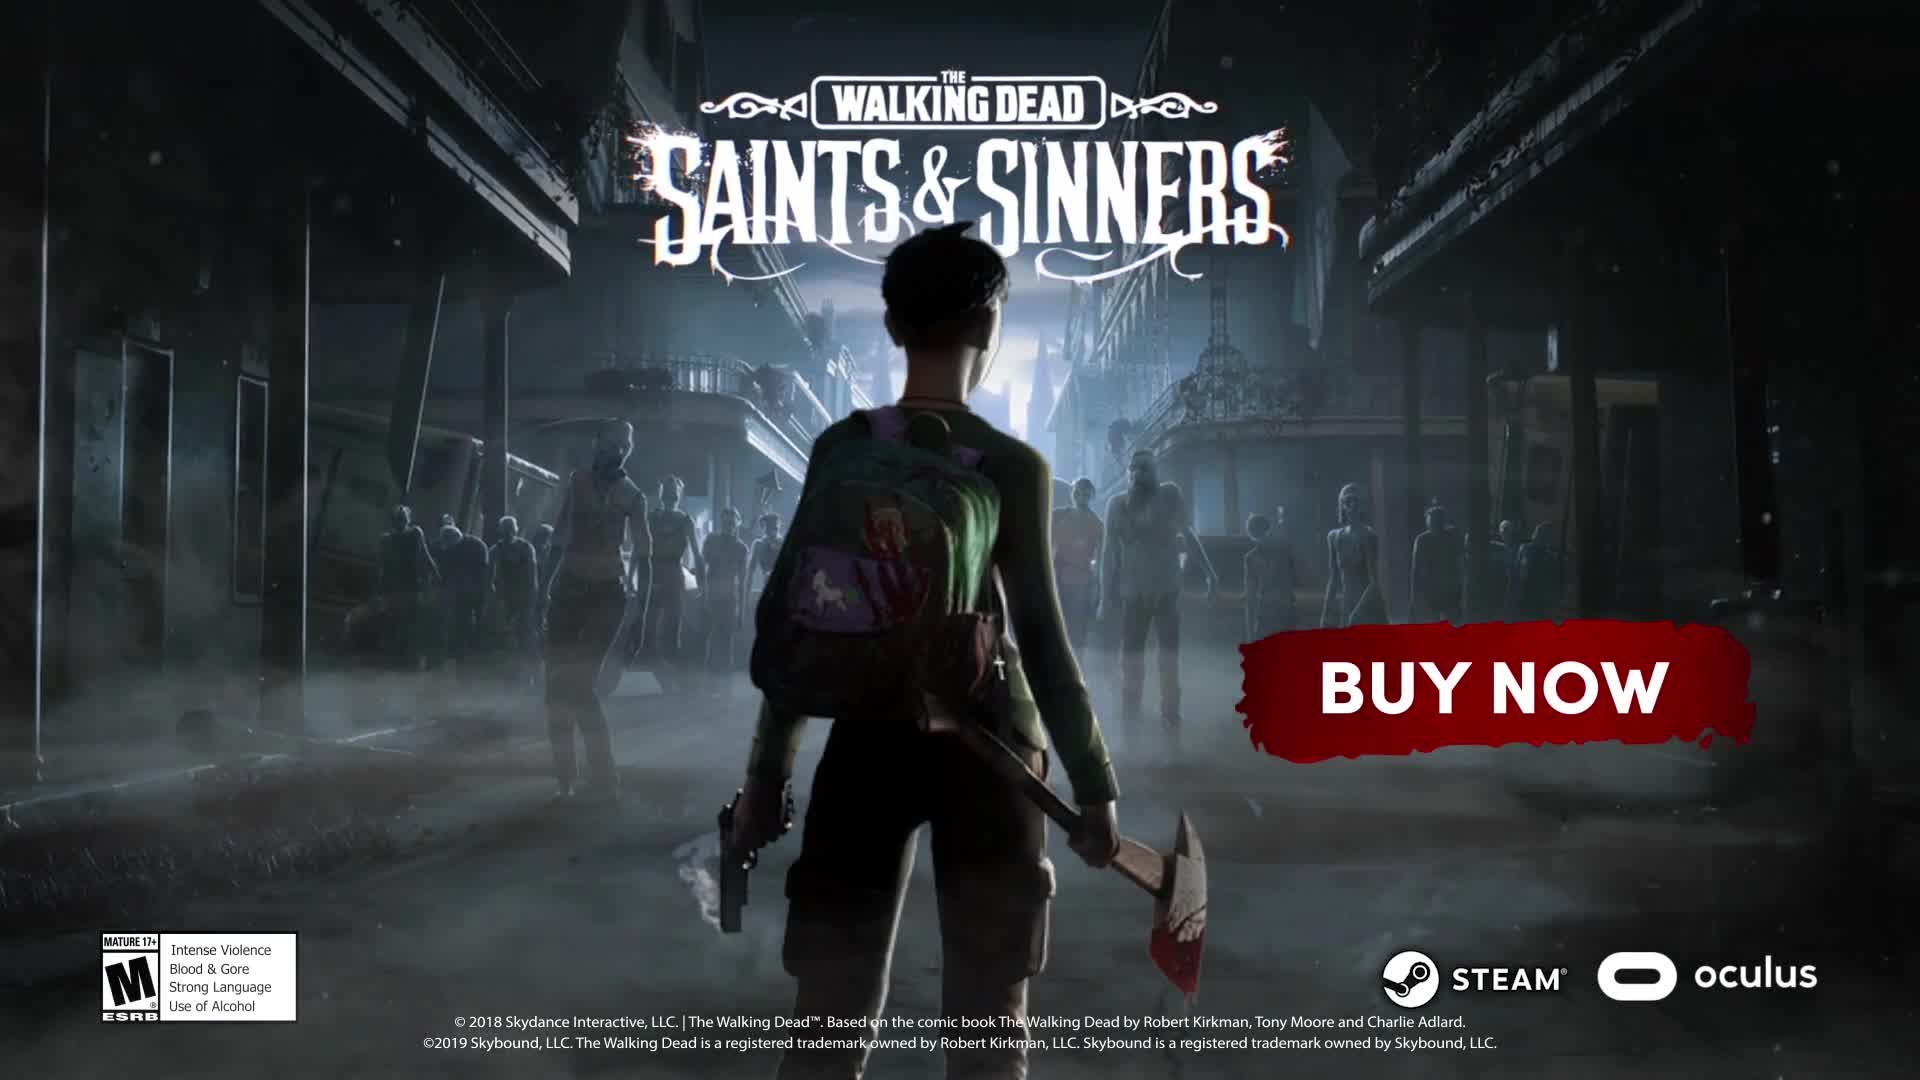 Trailer, Virtual Reality, VR, Zombies, The Walking Dead, TWD, Saints & Sinners, Skydance Interactive